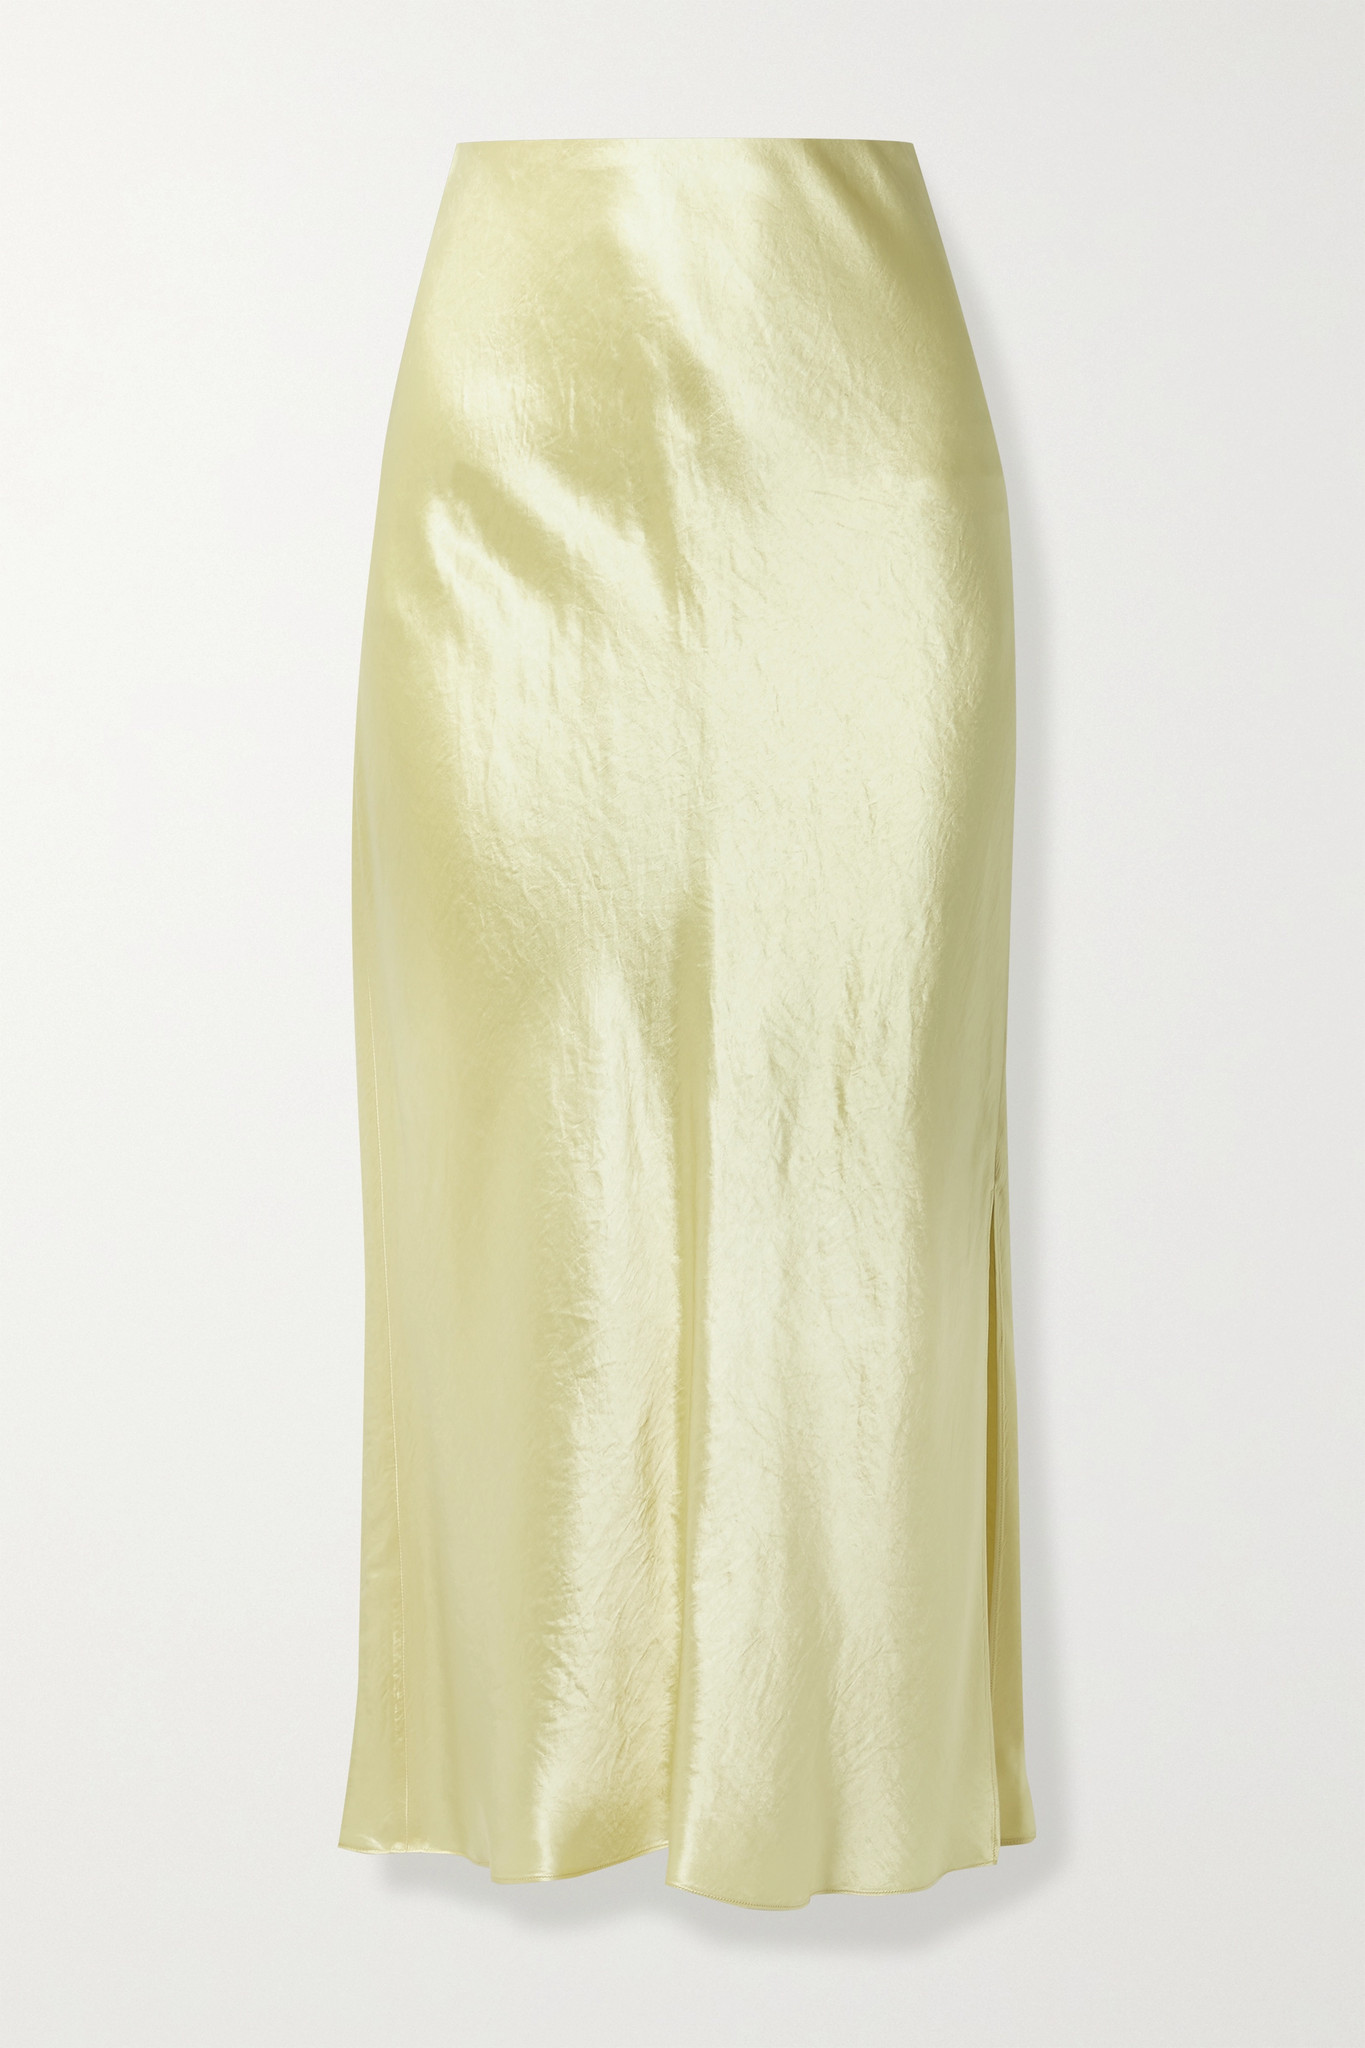 VINCE - Hammered-satin Midi Skirt - Yellow - large